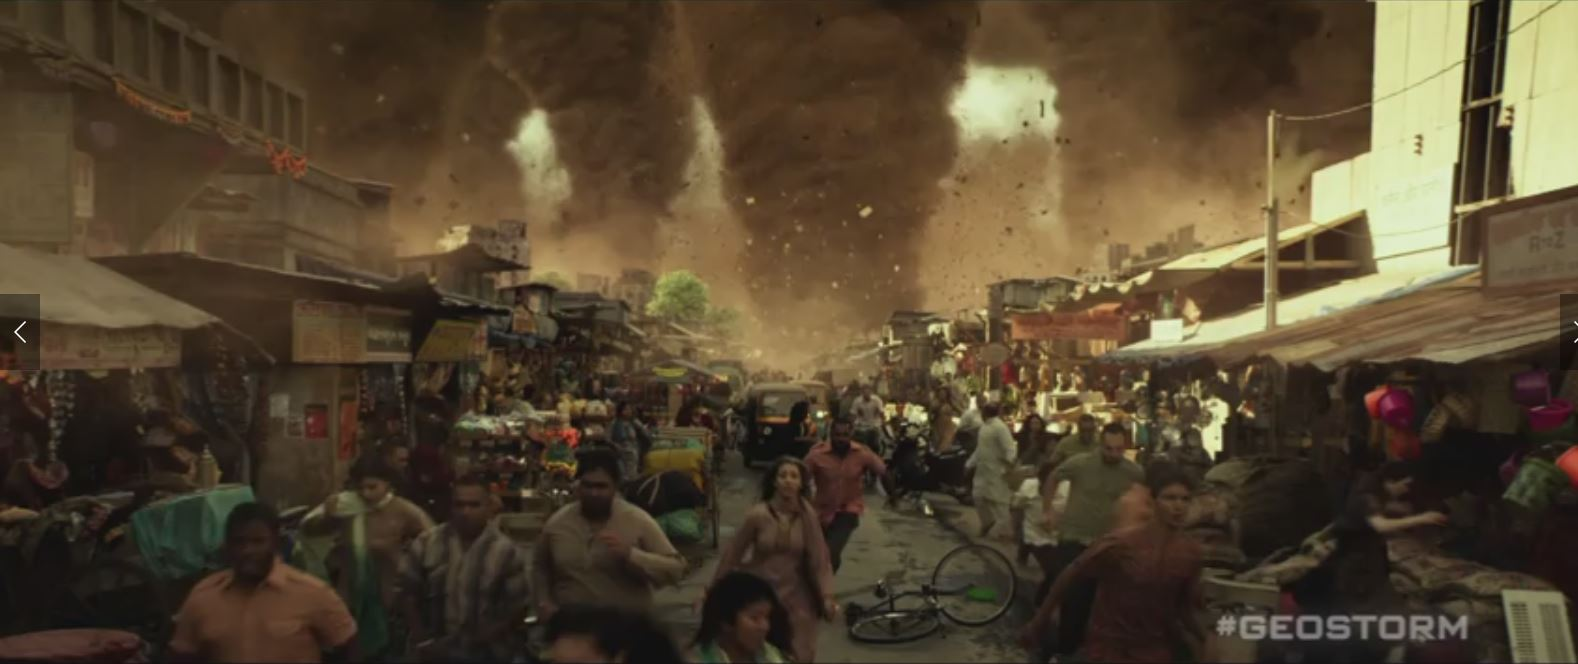 #Geostorm – another climate related disaster movie, crashes and burns